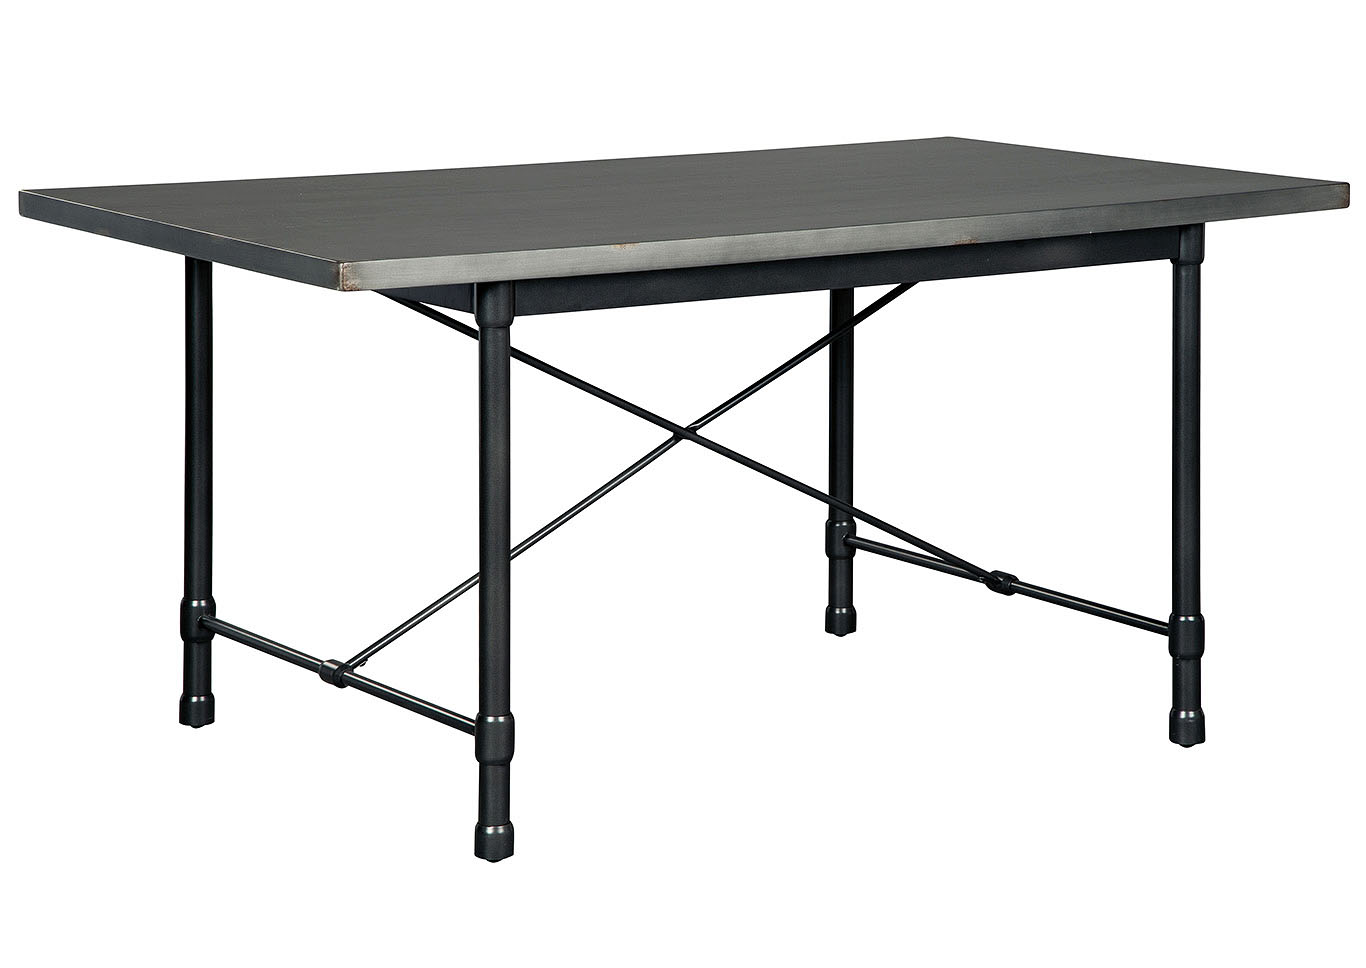 Minnona Aged Steel Rectangular Dining Table,Signature Design By Ashley